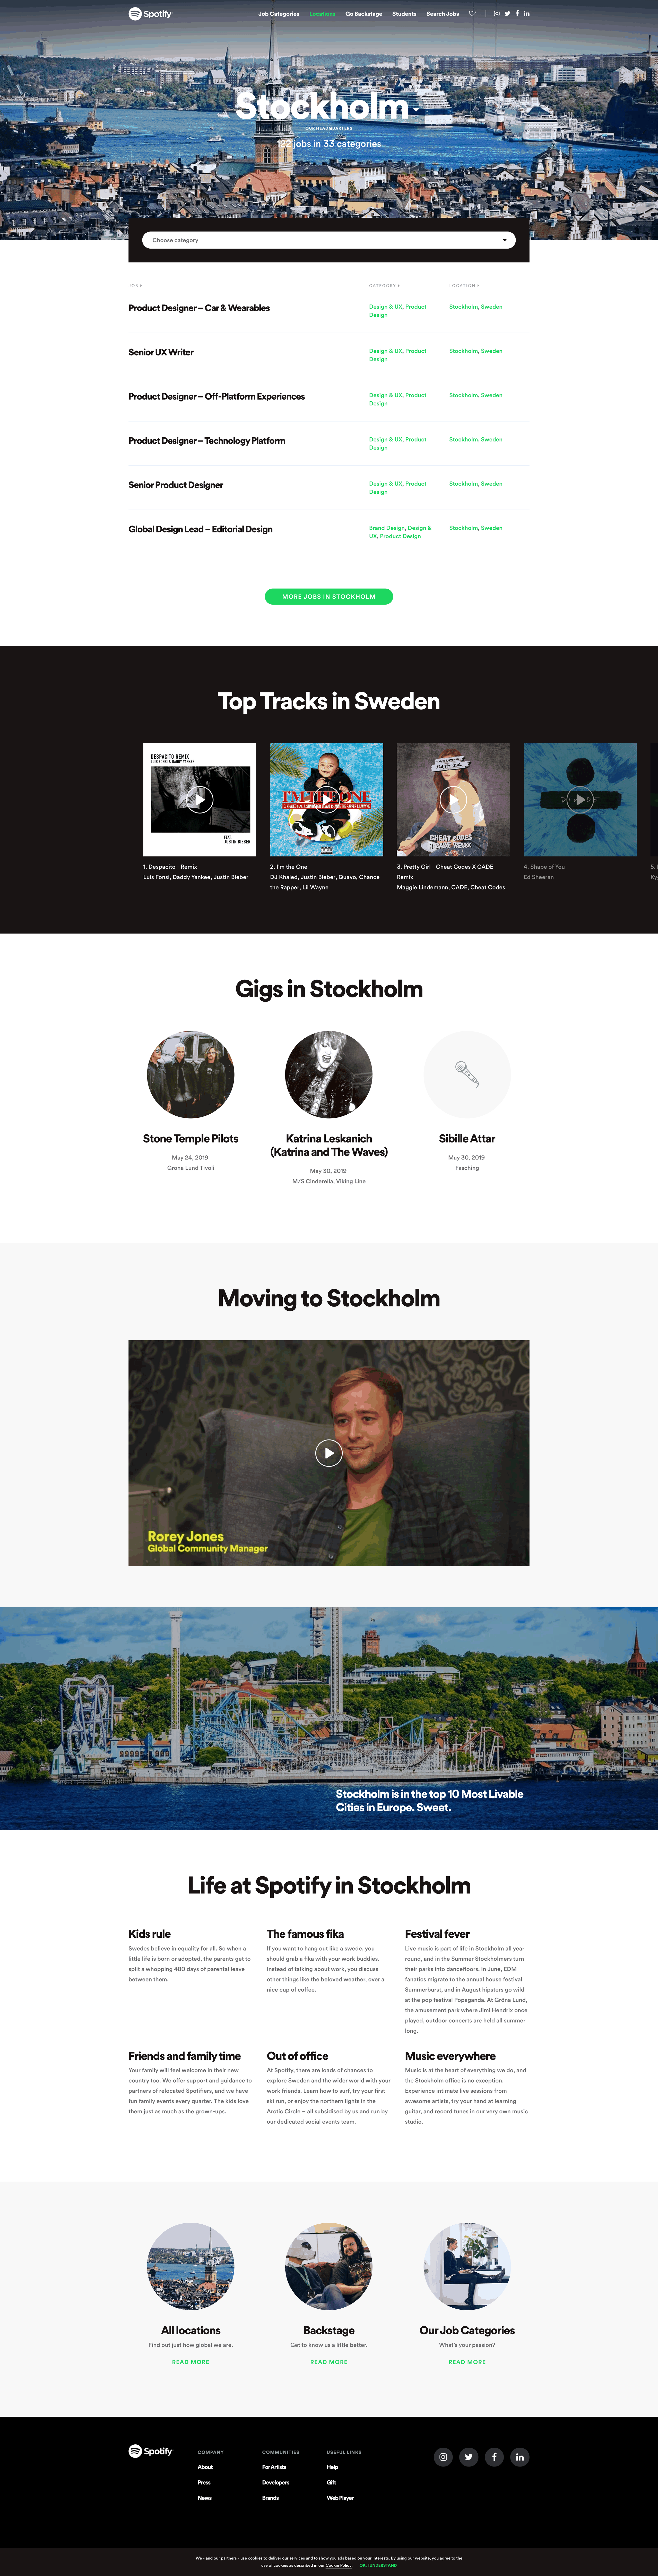 Inspiration Join Us: Stockholm by Spotify - UI Garage